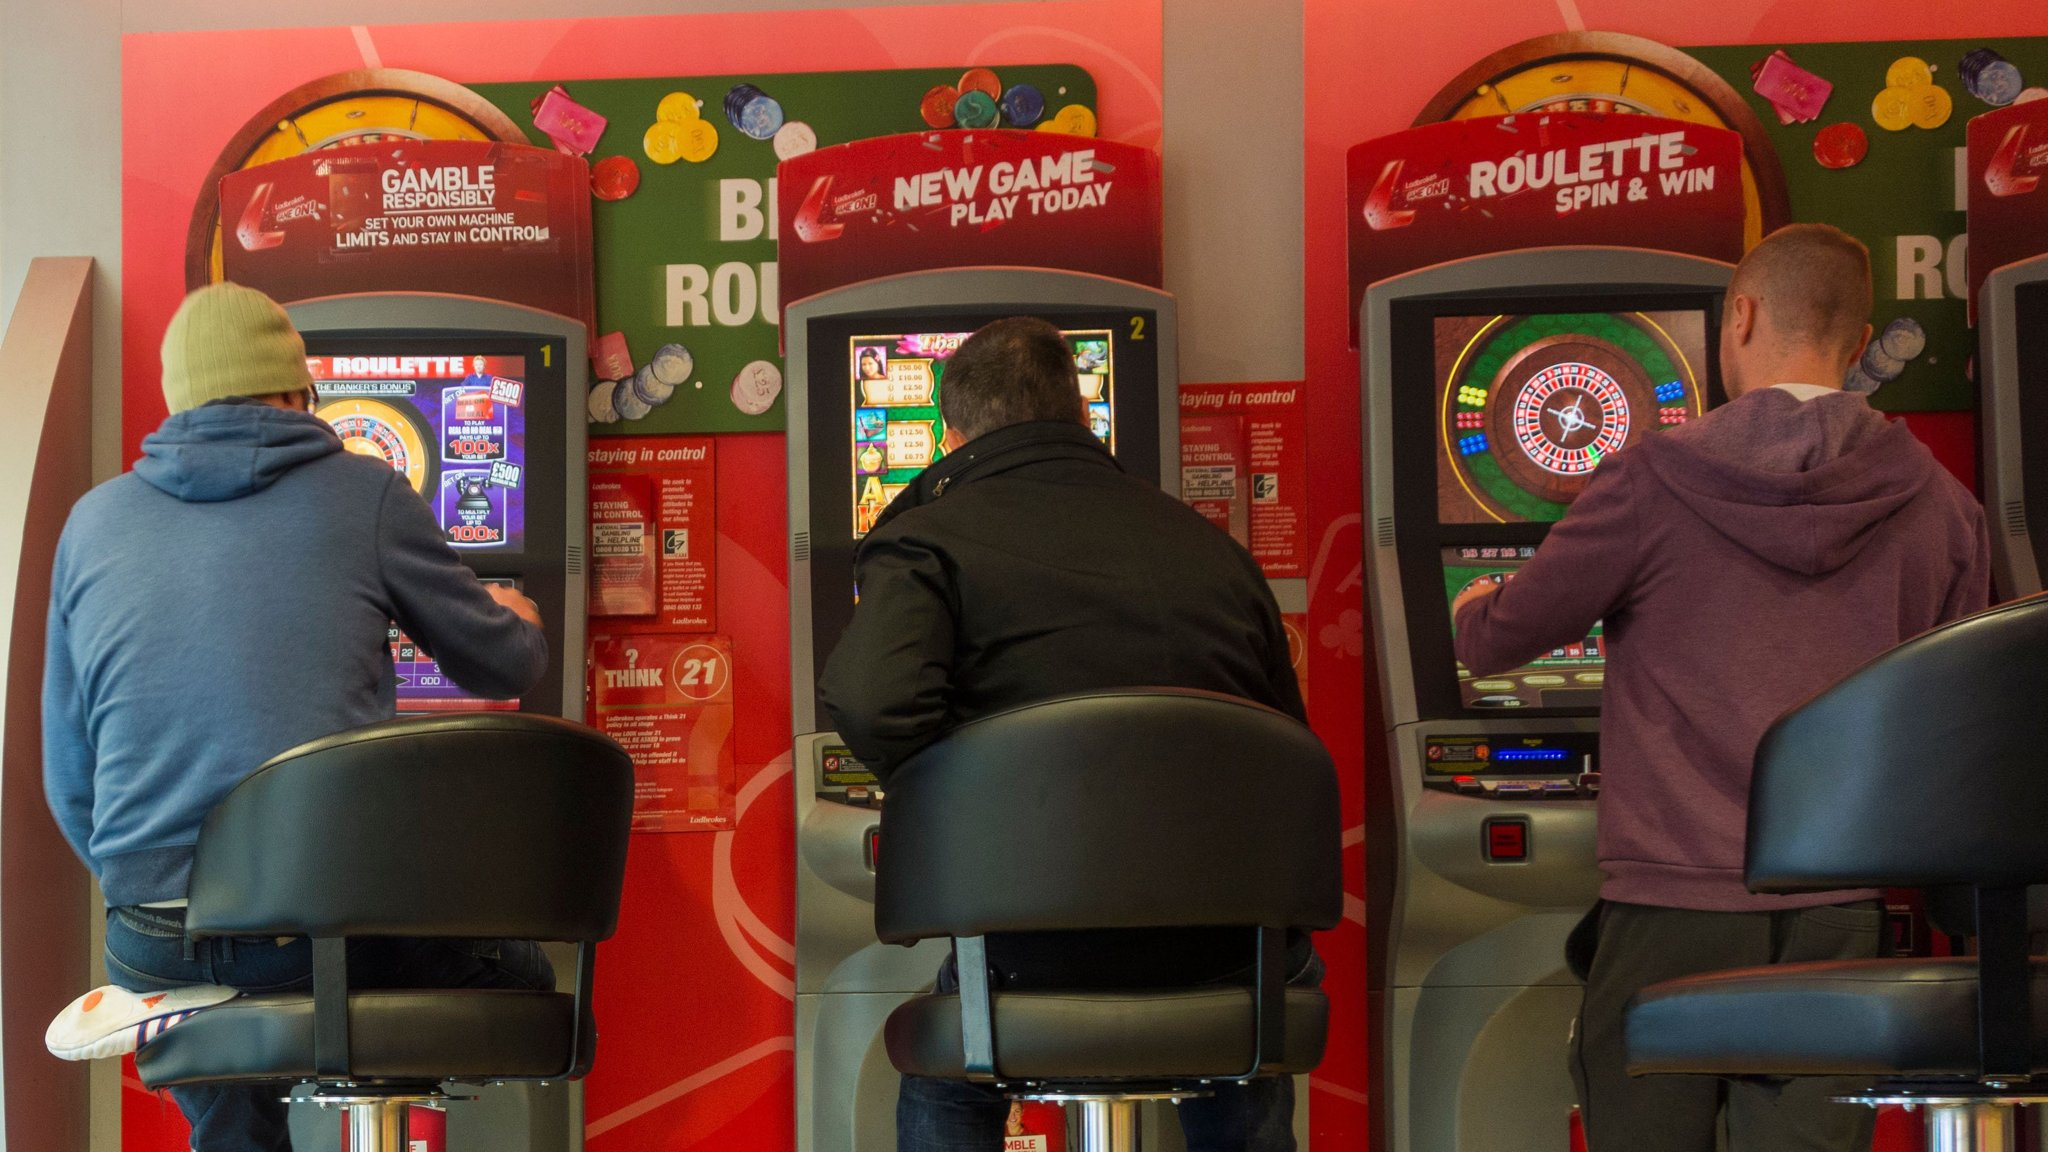 Betting regulator to look at stake limits for online games | Financial Times